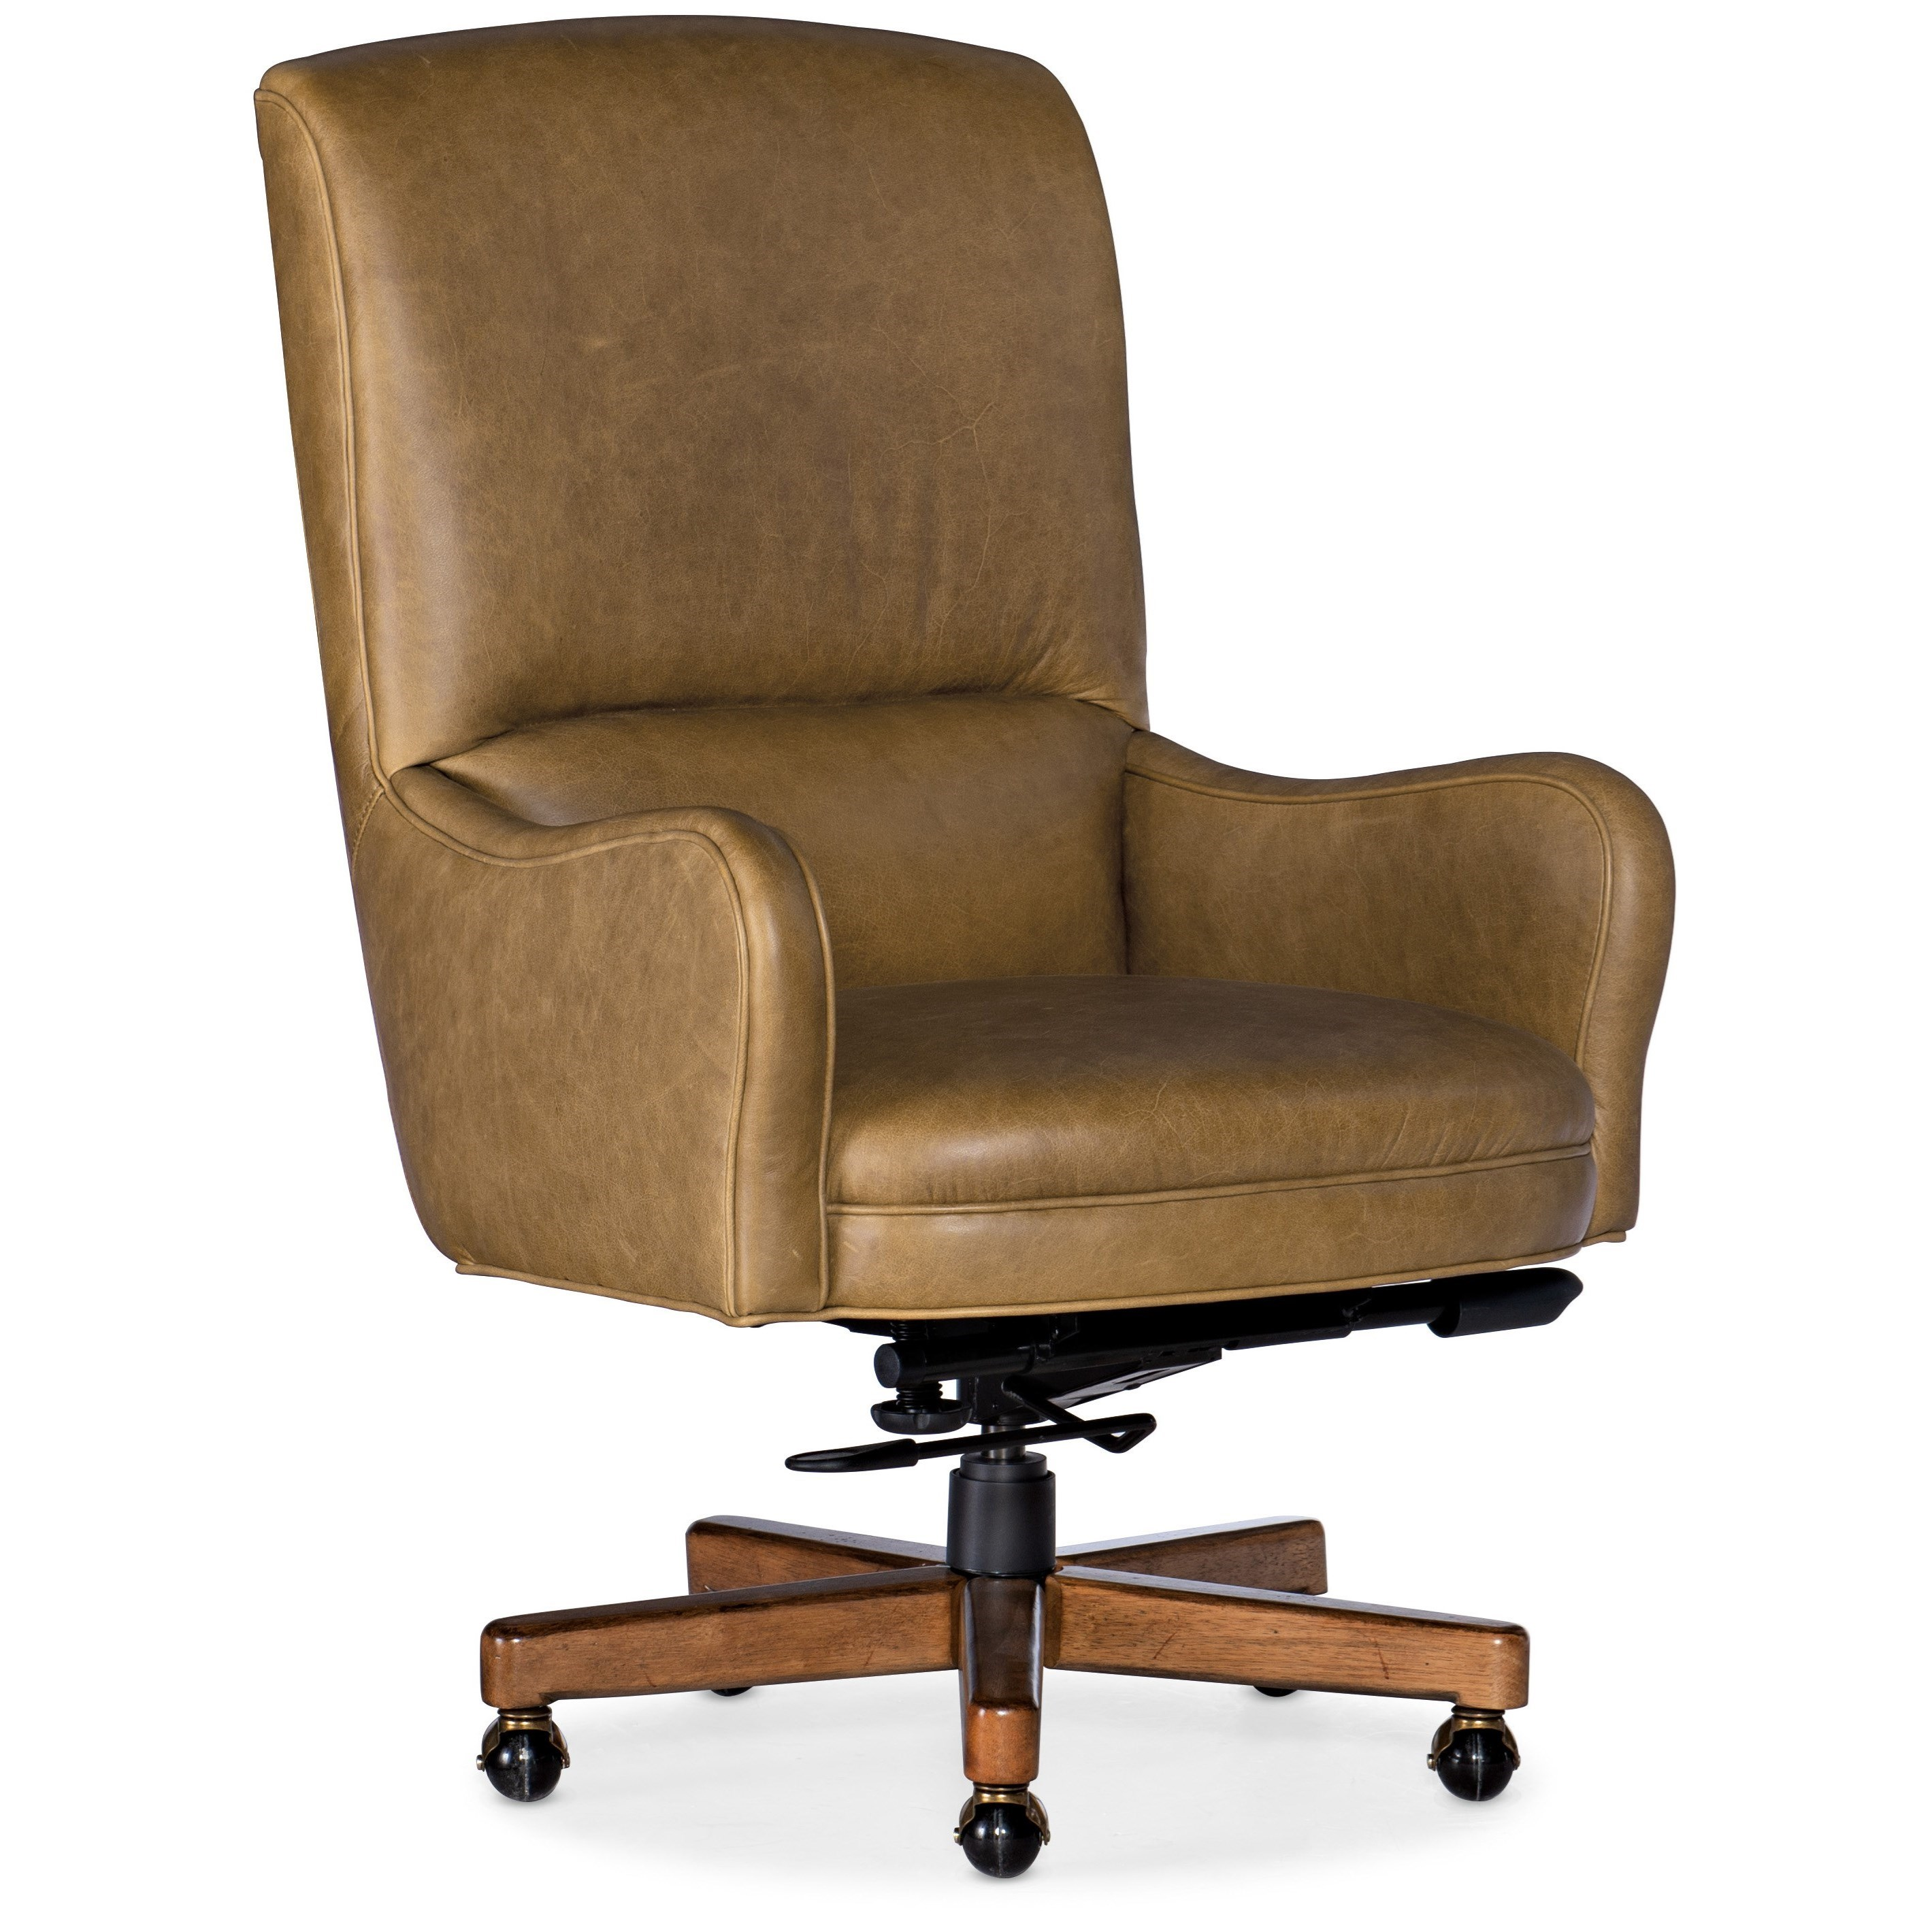 Executive Seating Dayton Executive Swivel Tilt Chair by Hooker Furniture at Miller Waldrop Furniture and Decor